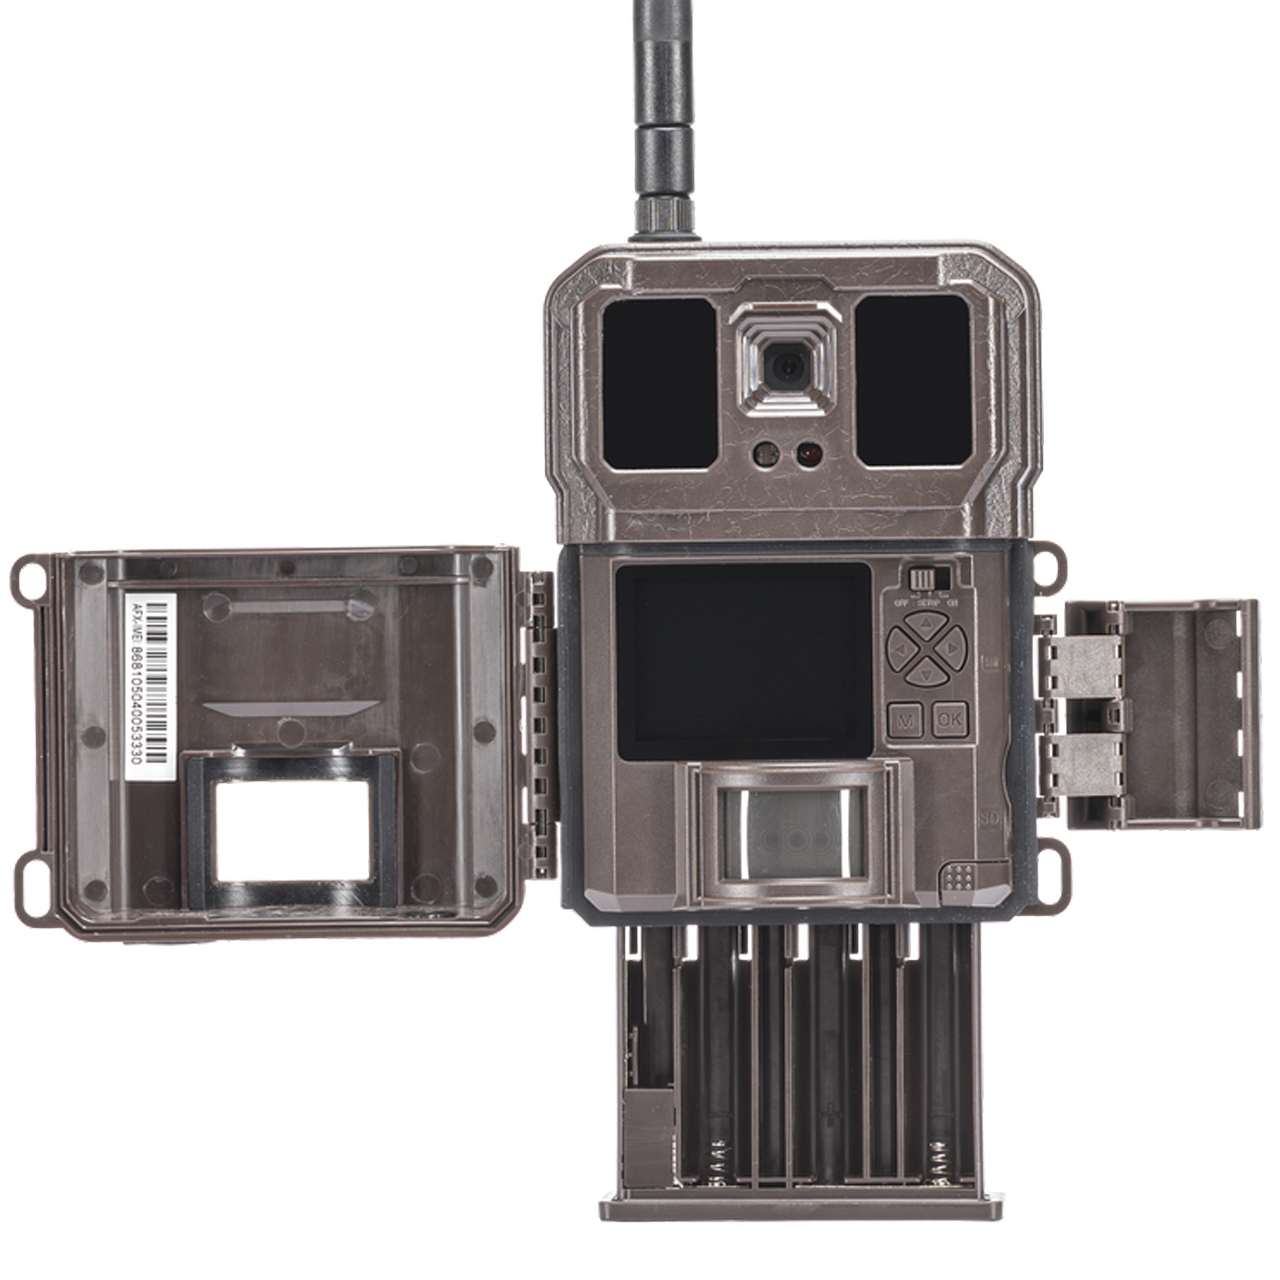 New WC-30 Wireless Trail Camera from Covert Scouting Cameras